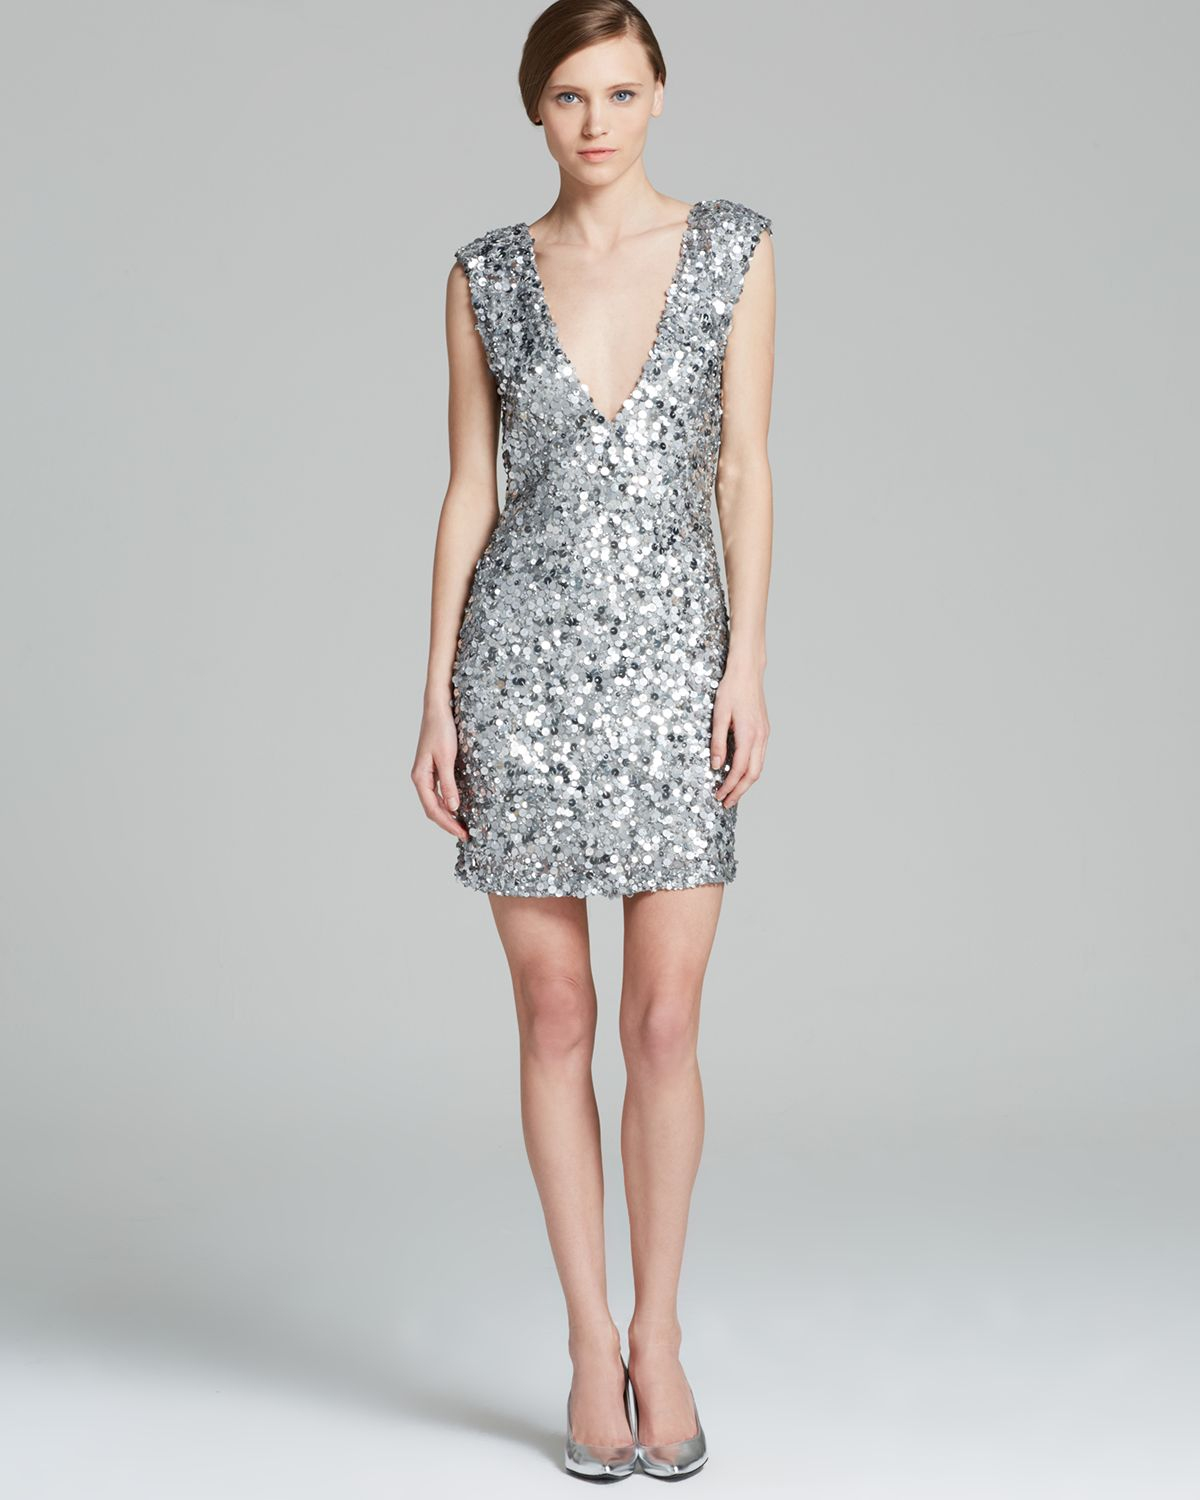 Silver Jewels Alice Blue Dress 1 To Download Silver Jewels Alice Blue ...